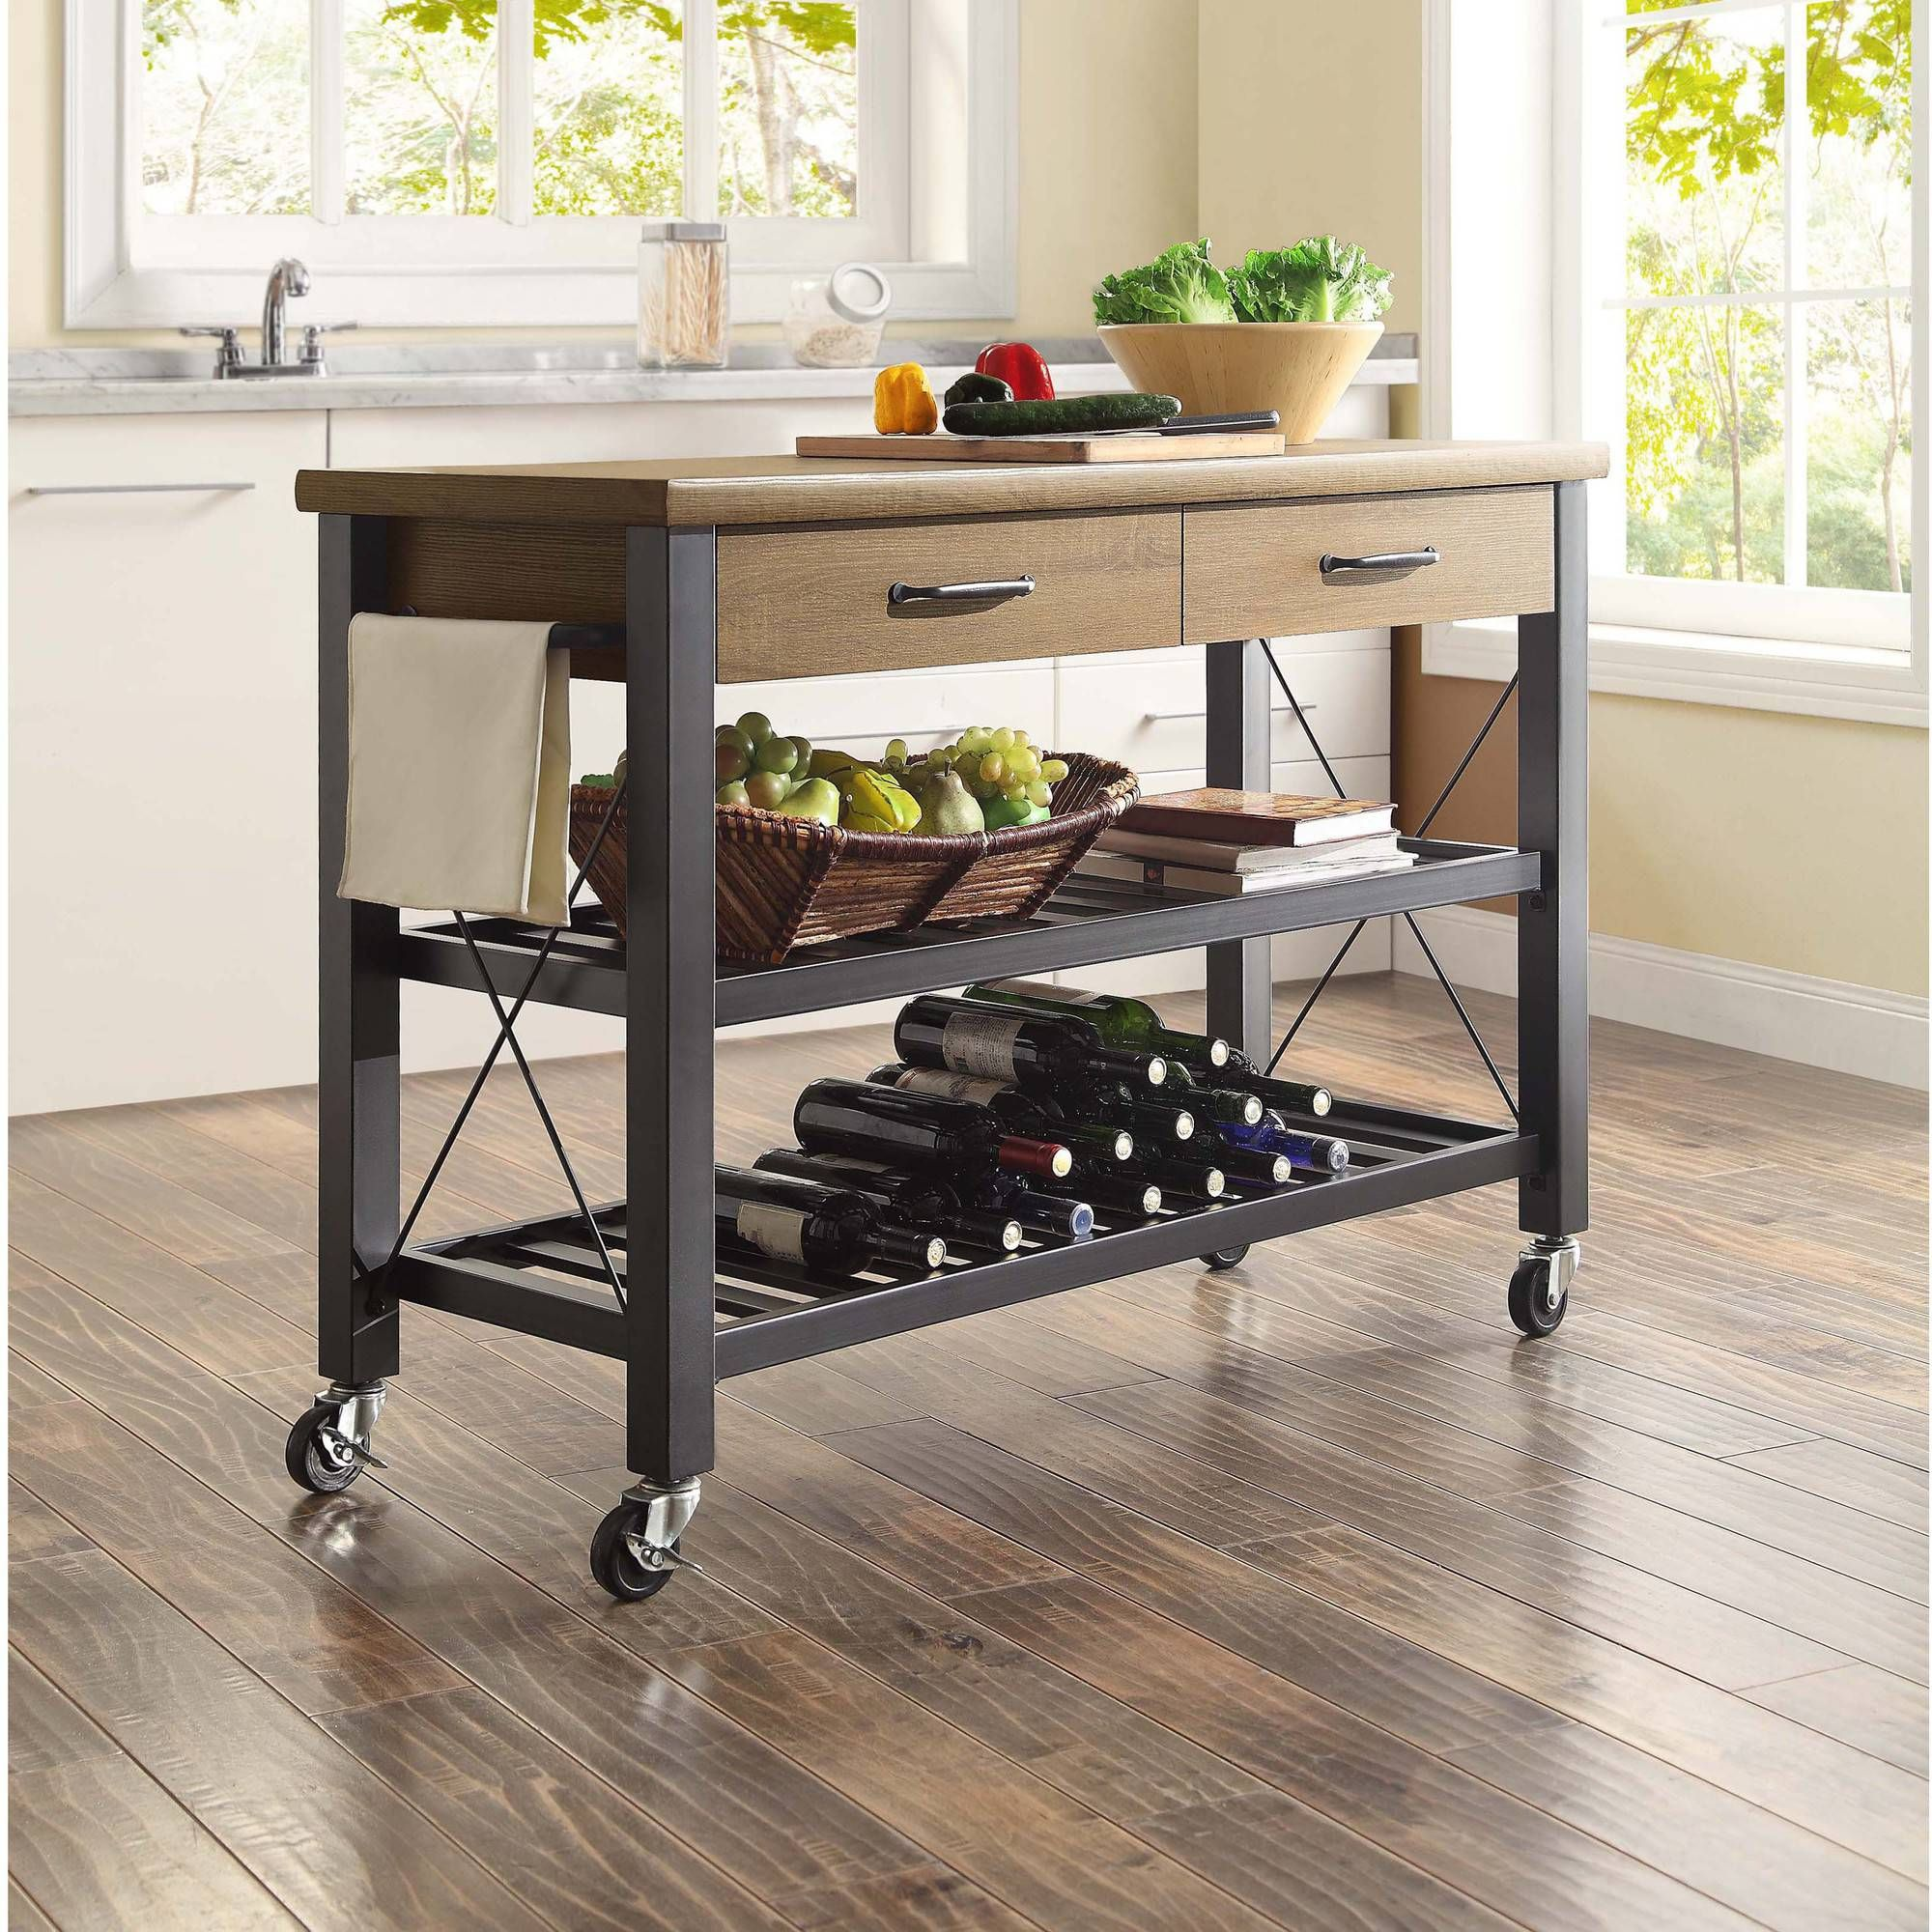 Whalen Santa Fe Rolling Kitchen Cart with Metal Shelves, Rustic ...